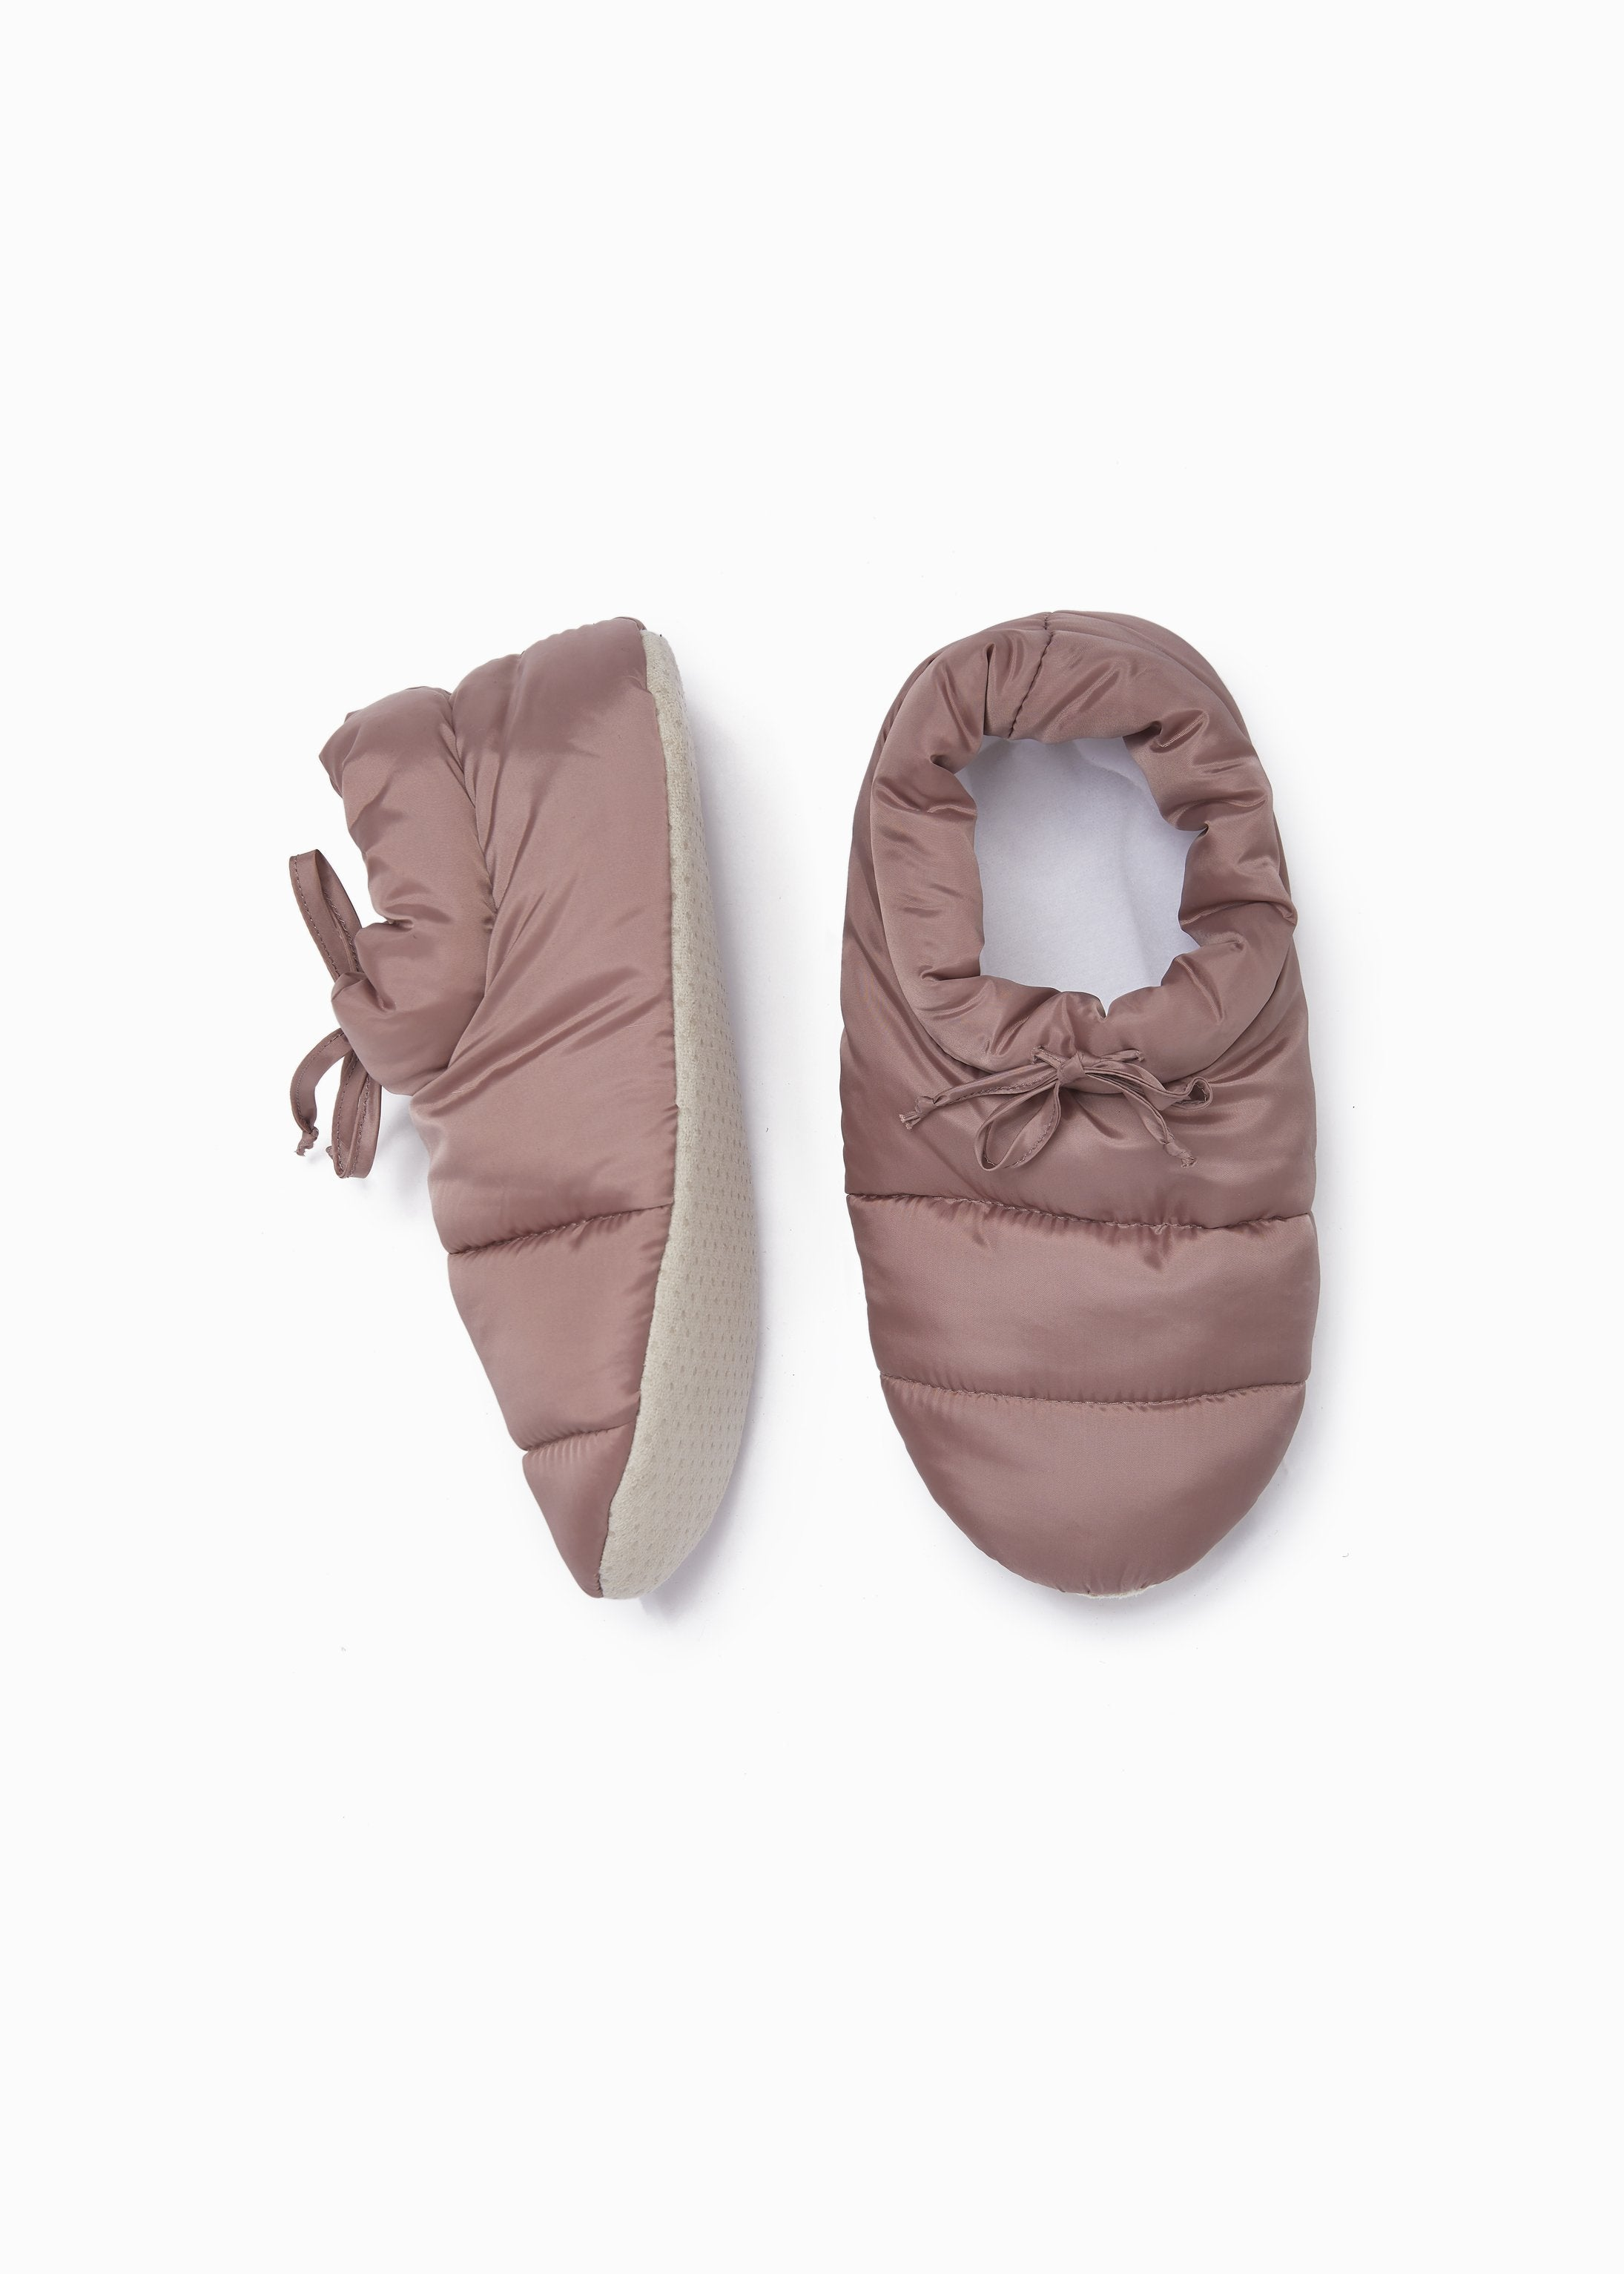 Puffer Slipper Socks in Rose Gold - tempting-teal-boutique